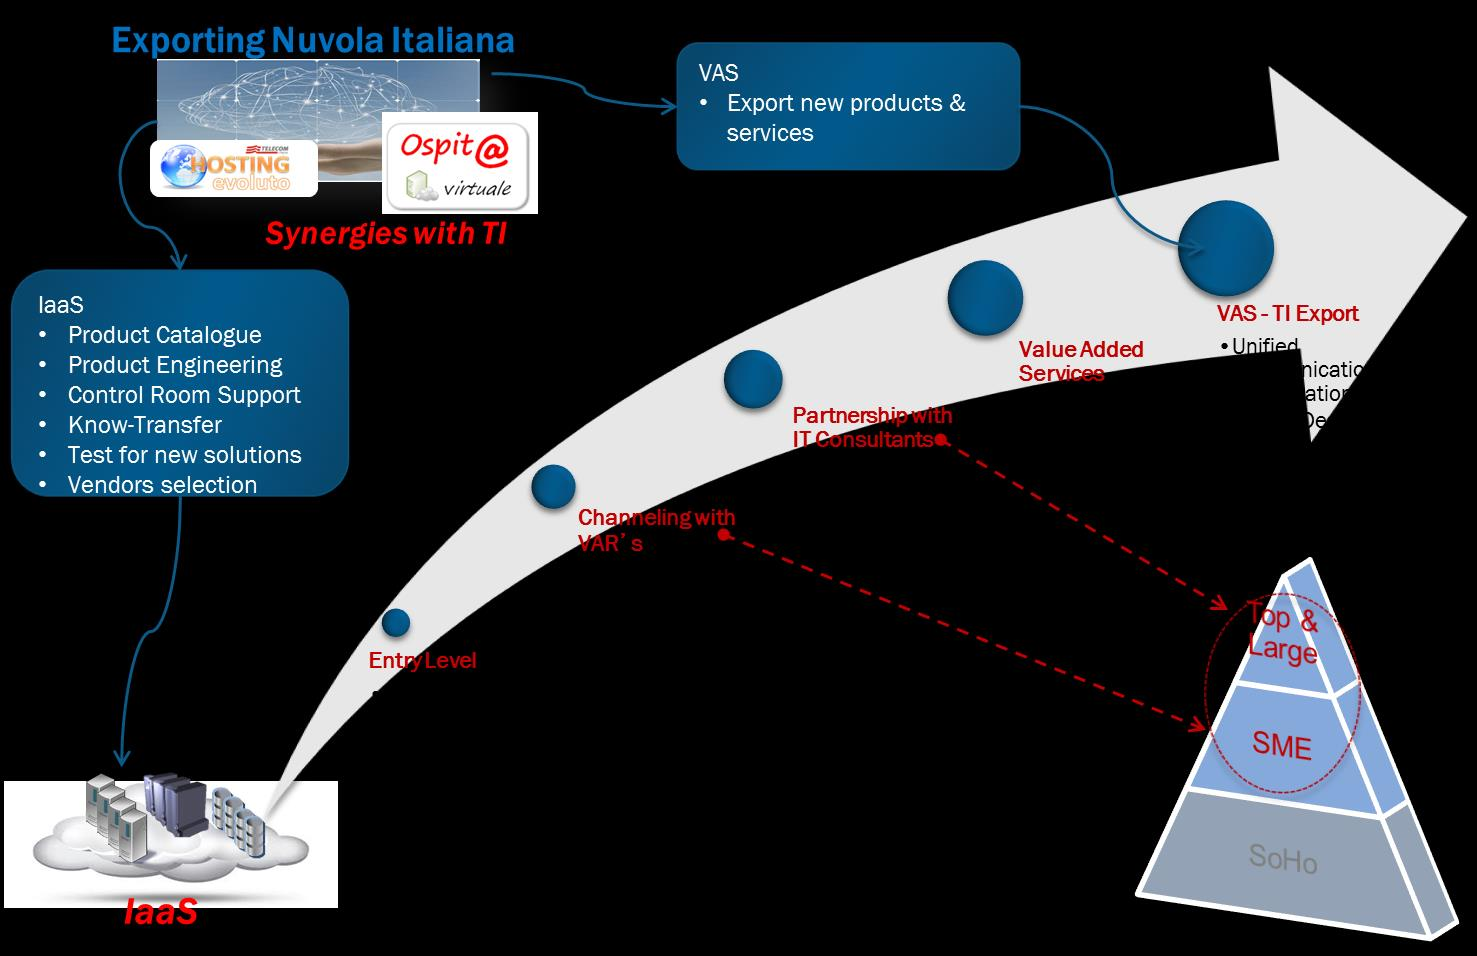 Med Nautilus Cloud Solutions: Exporting Nuvola